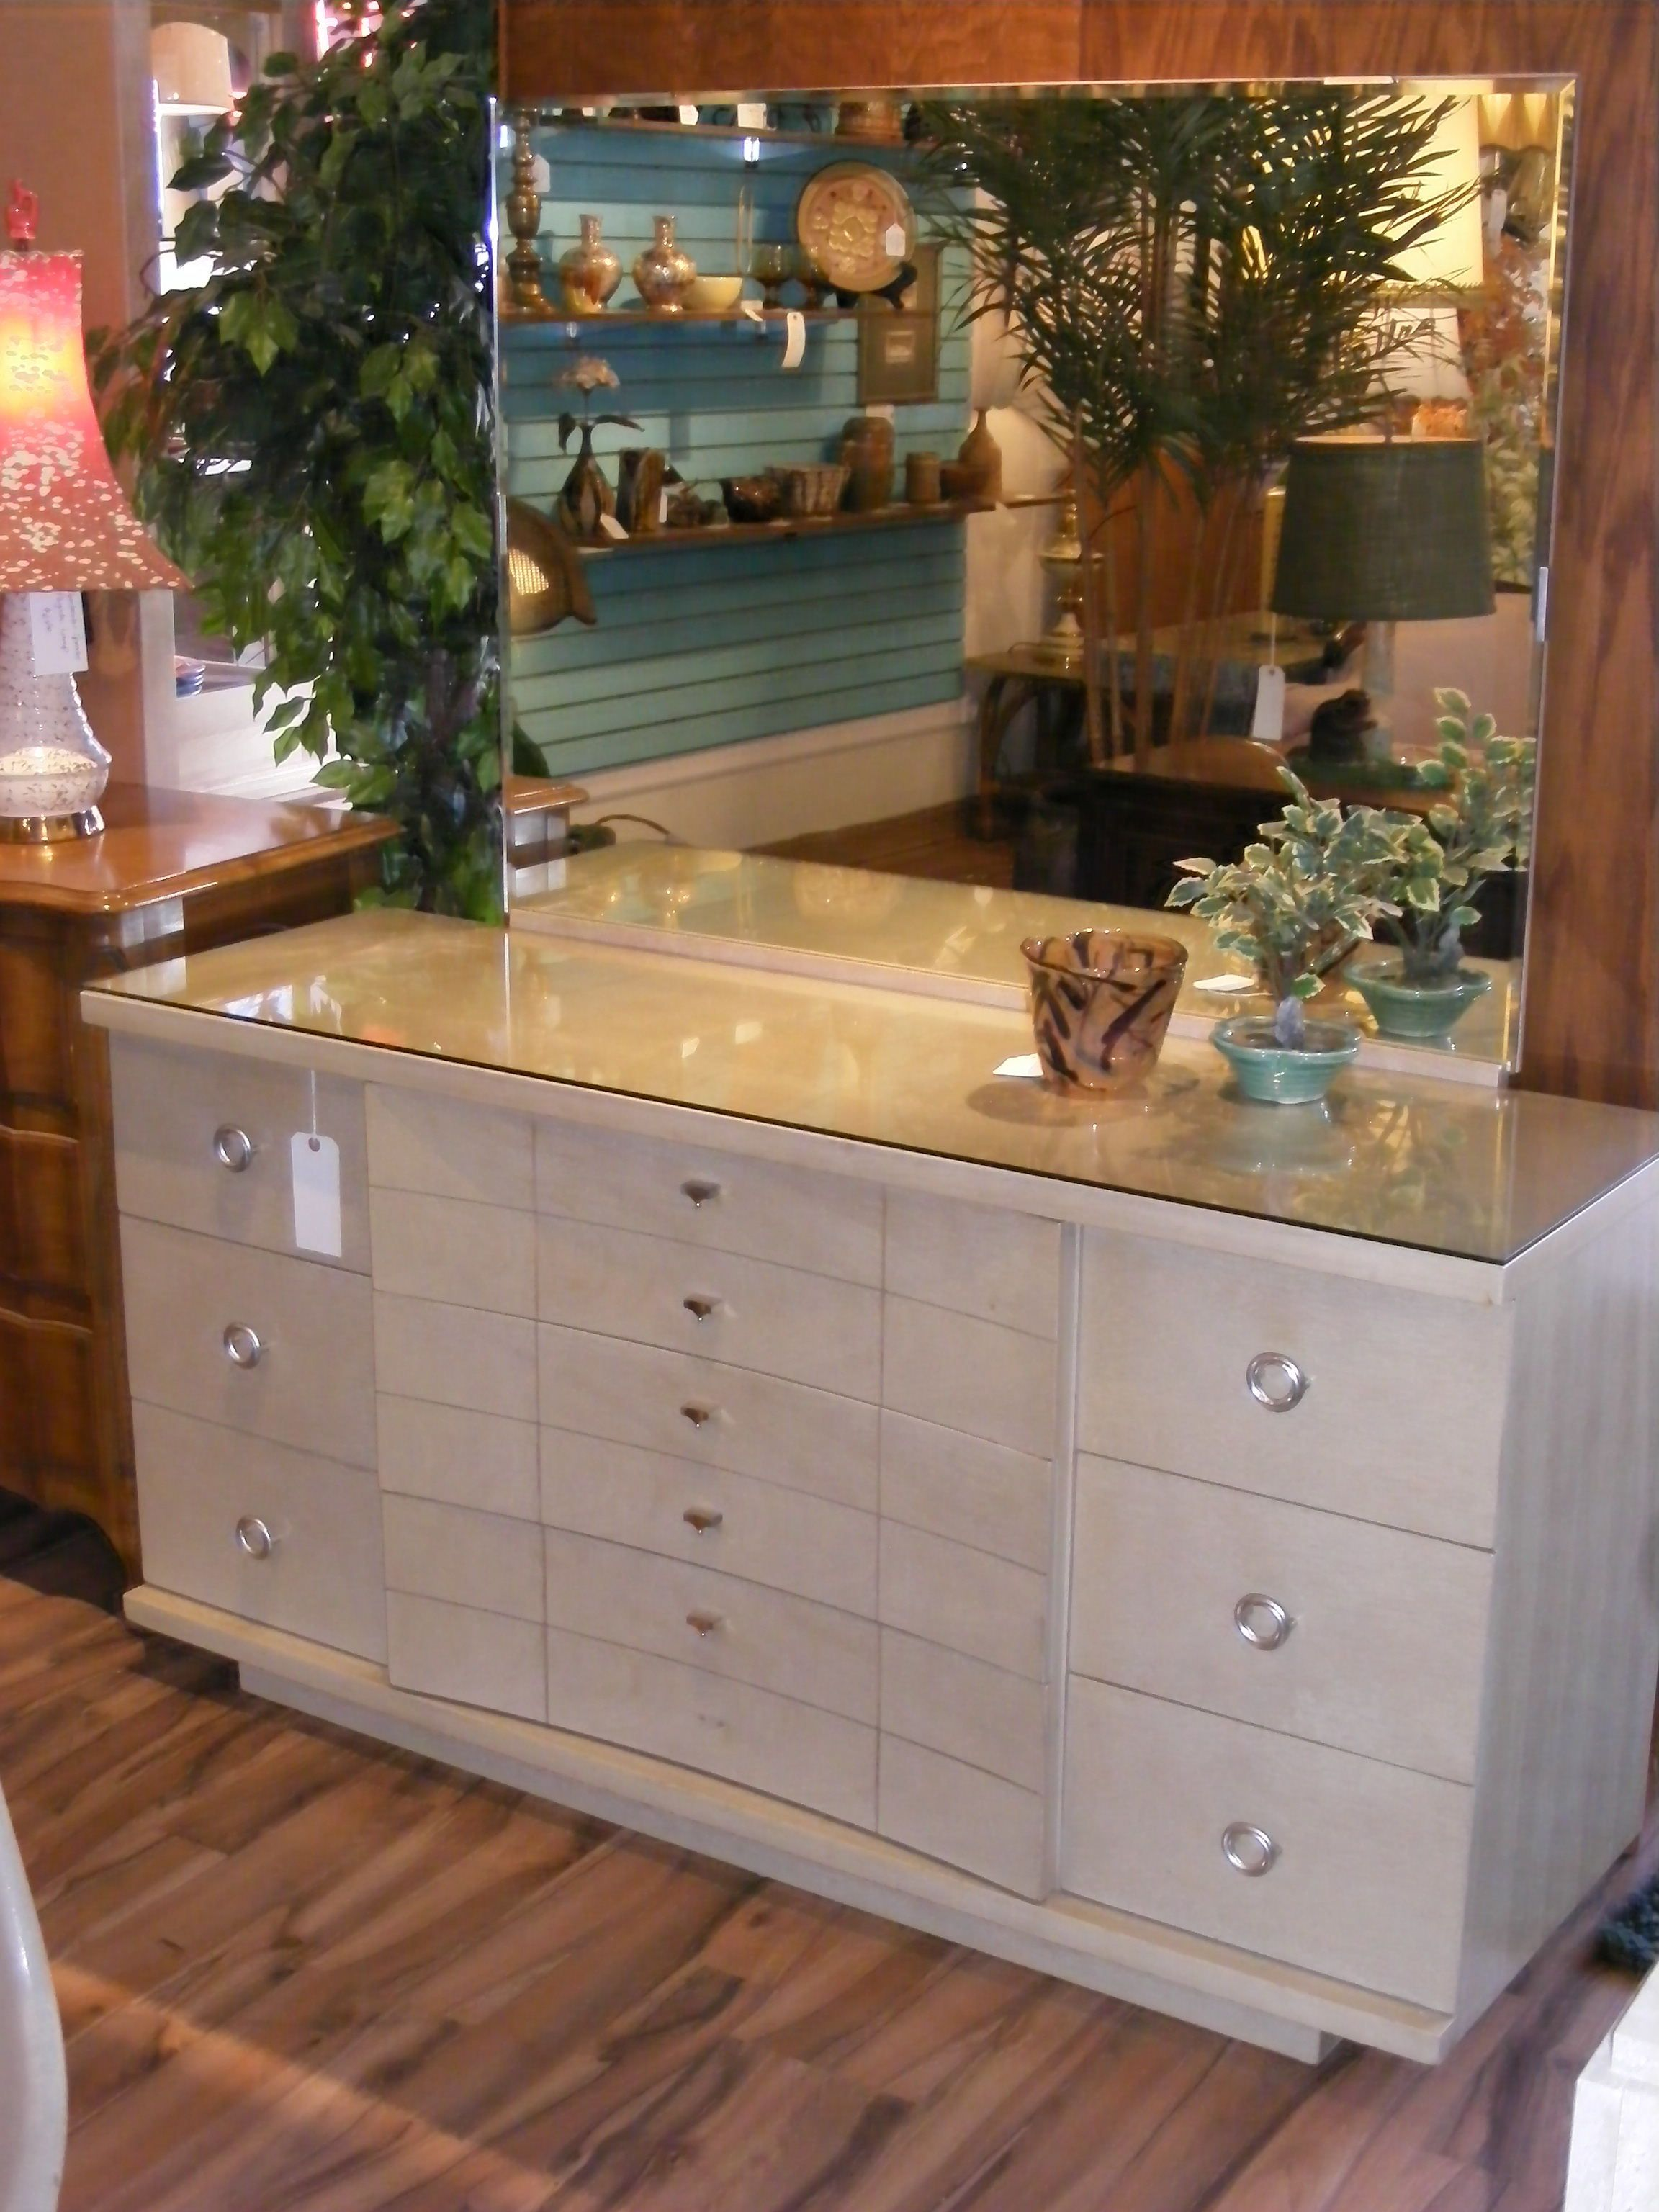 Kent Coffey Blond Beauty Dresser with Mirror 1954! — at